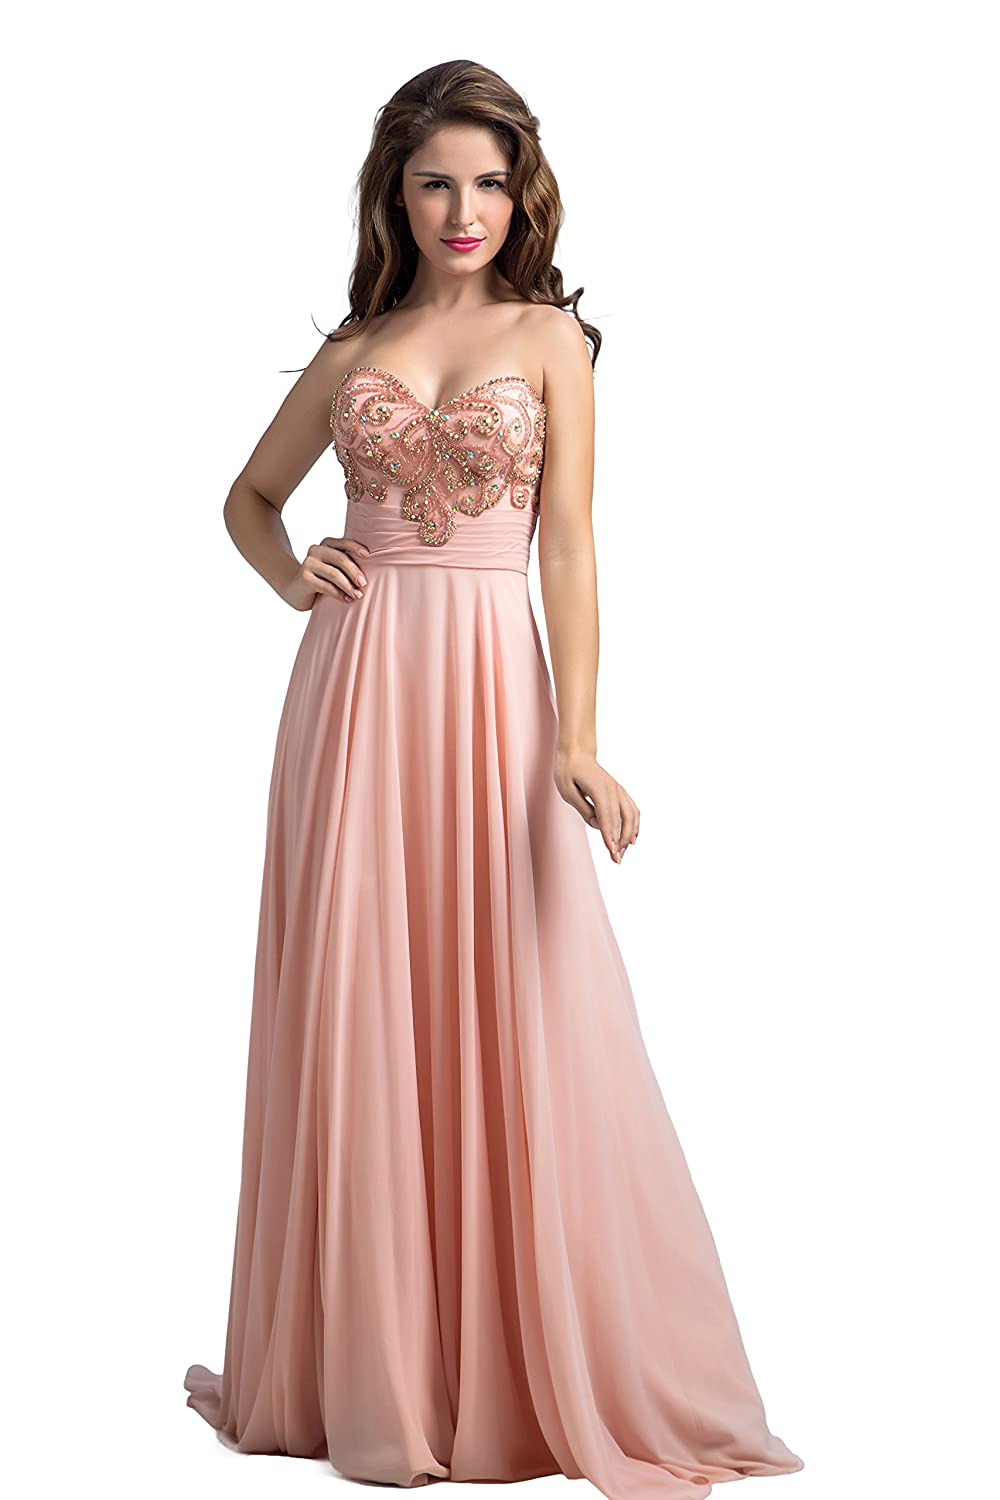 Bridal_Mall Women's Sweetheart Crystal Diner Party Chiffon Bridesmaid Prom Dresses